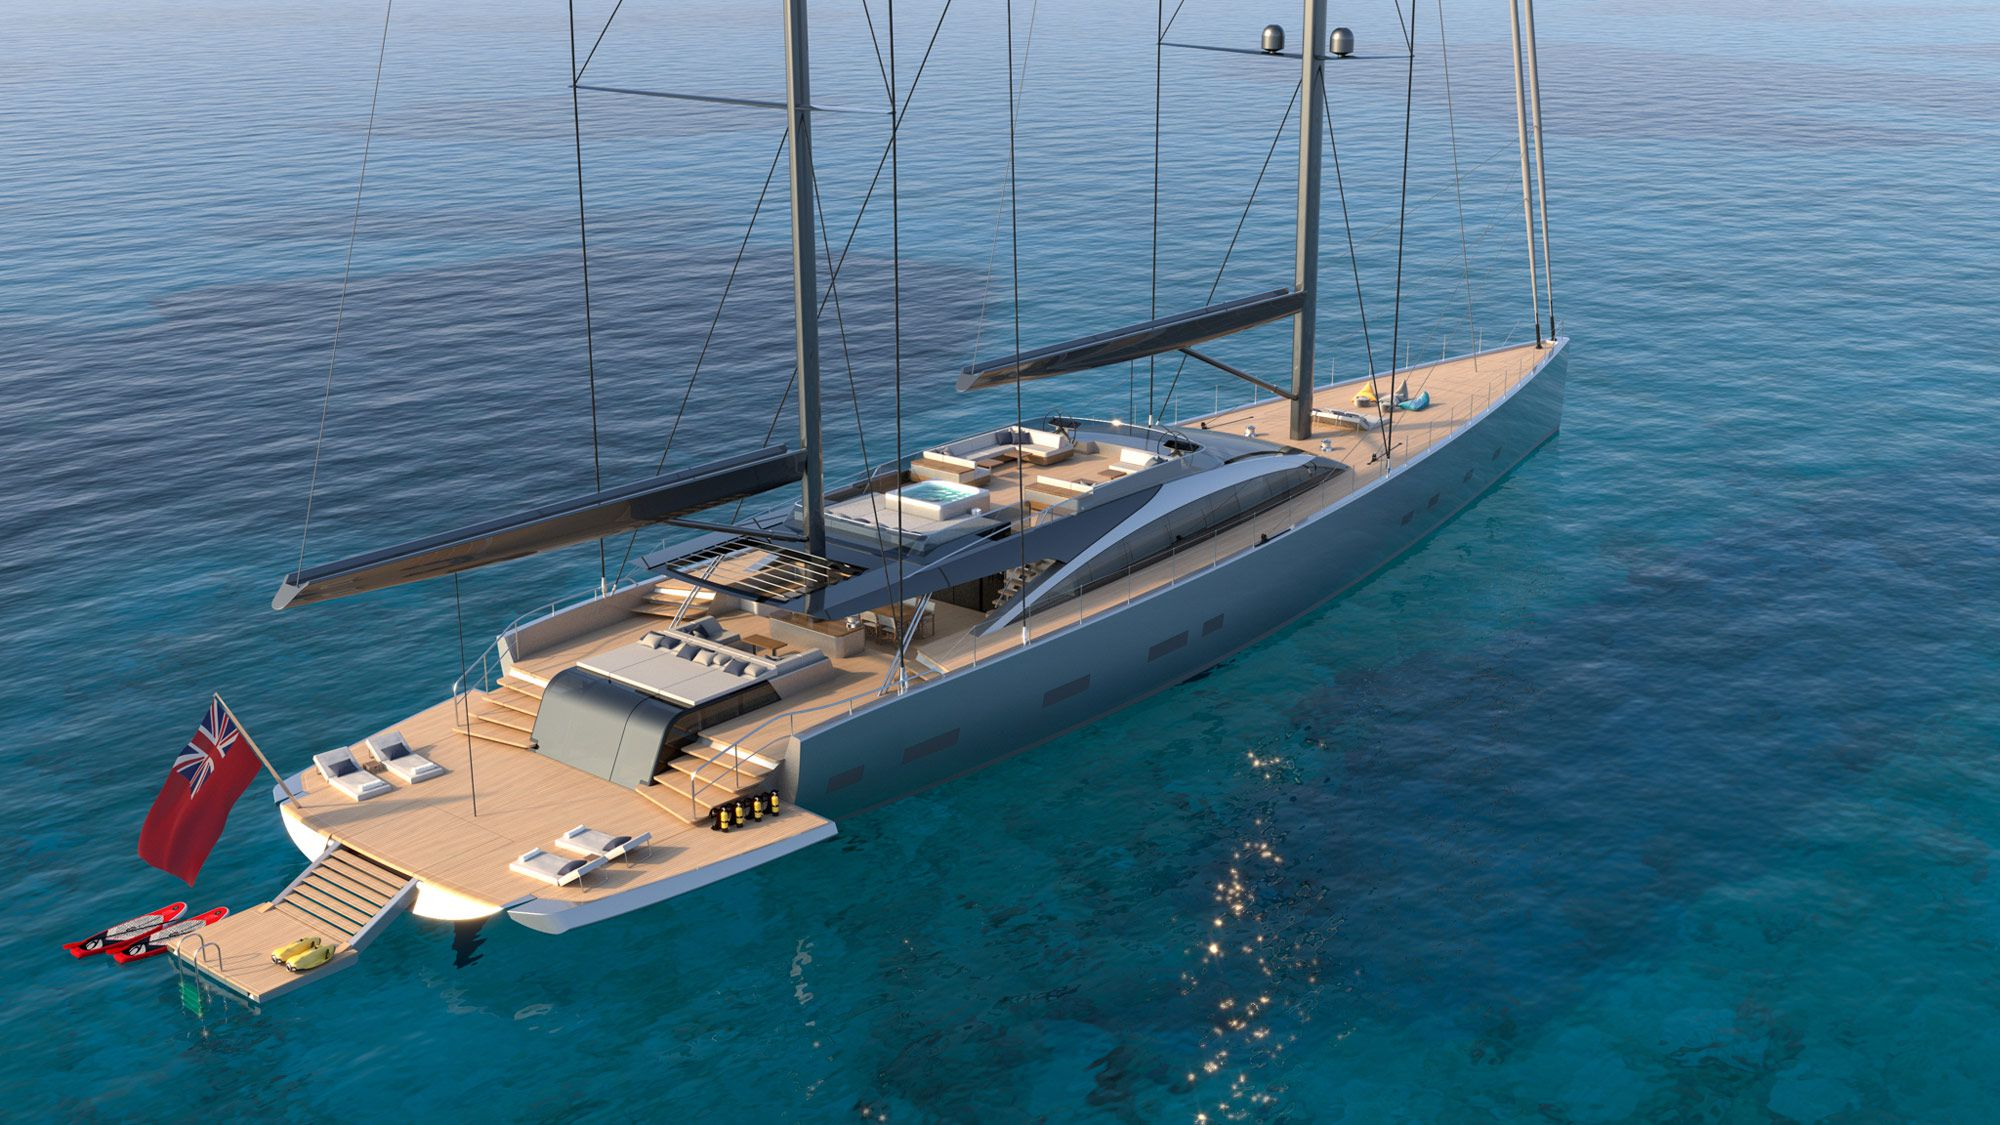 Dixon Yacht Design has debuted plans for Project 175, a 180-foot sailing yacht with a low-profile, a flybridge with helm stations and a hot tub.